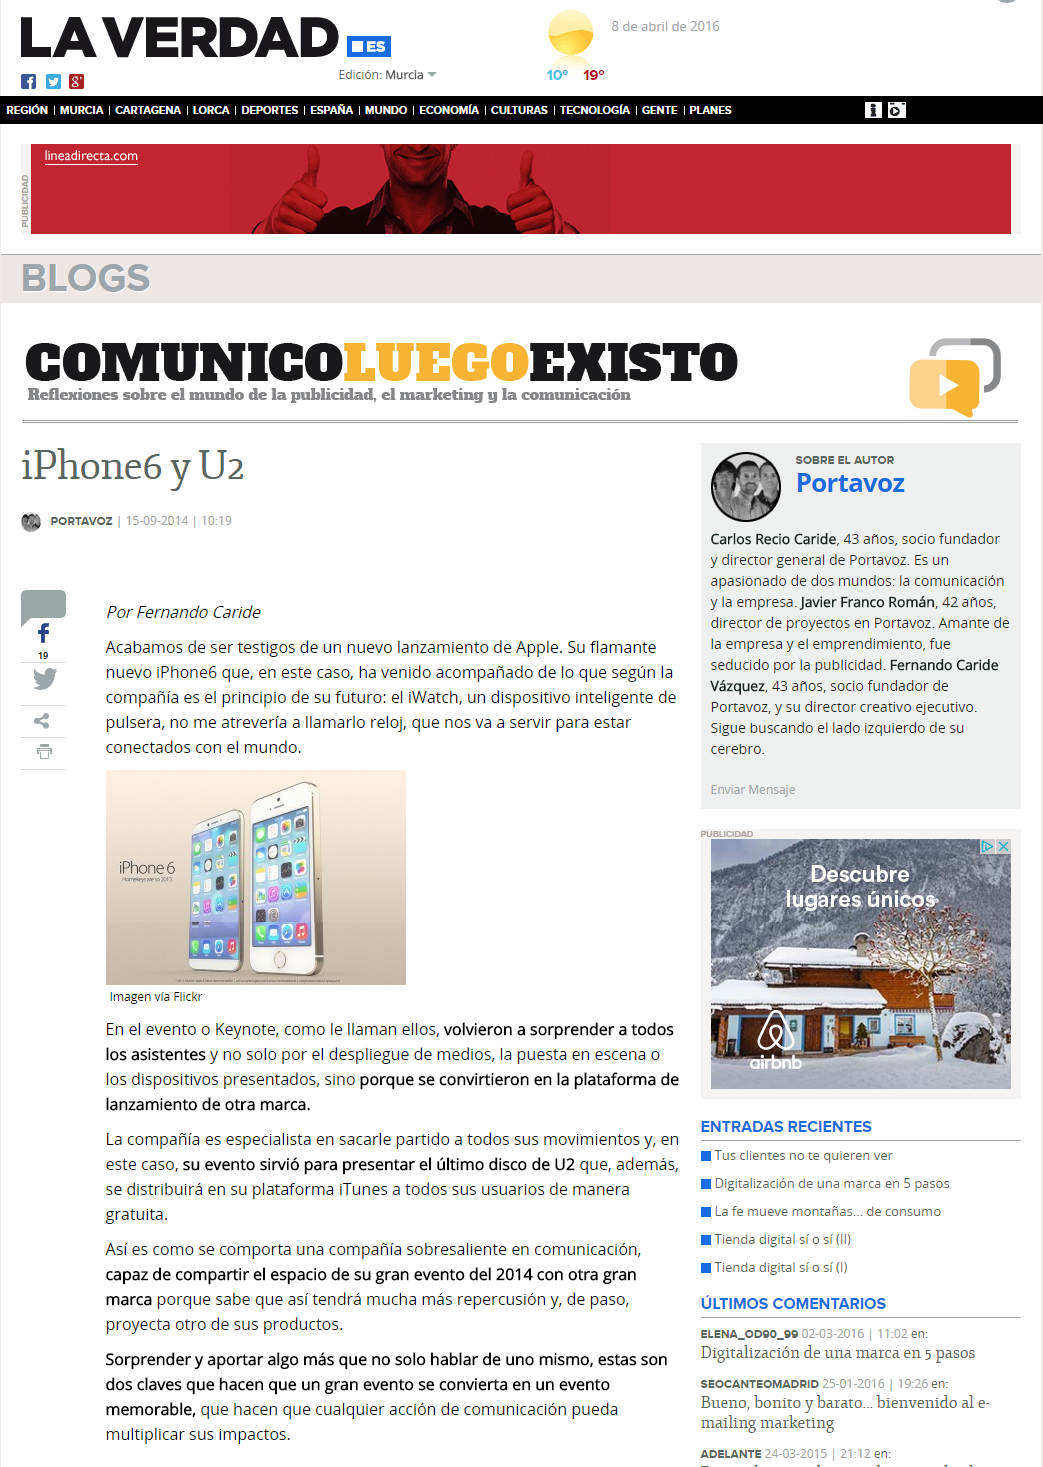 FireShot Capture 97 - iPhone6 y U2 I Comunico, luego existo _ - http___blogs.laverdad.es_comunicol